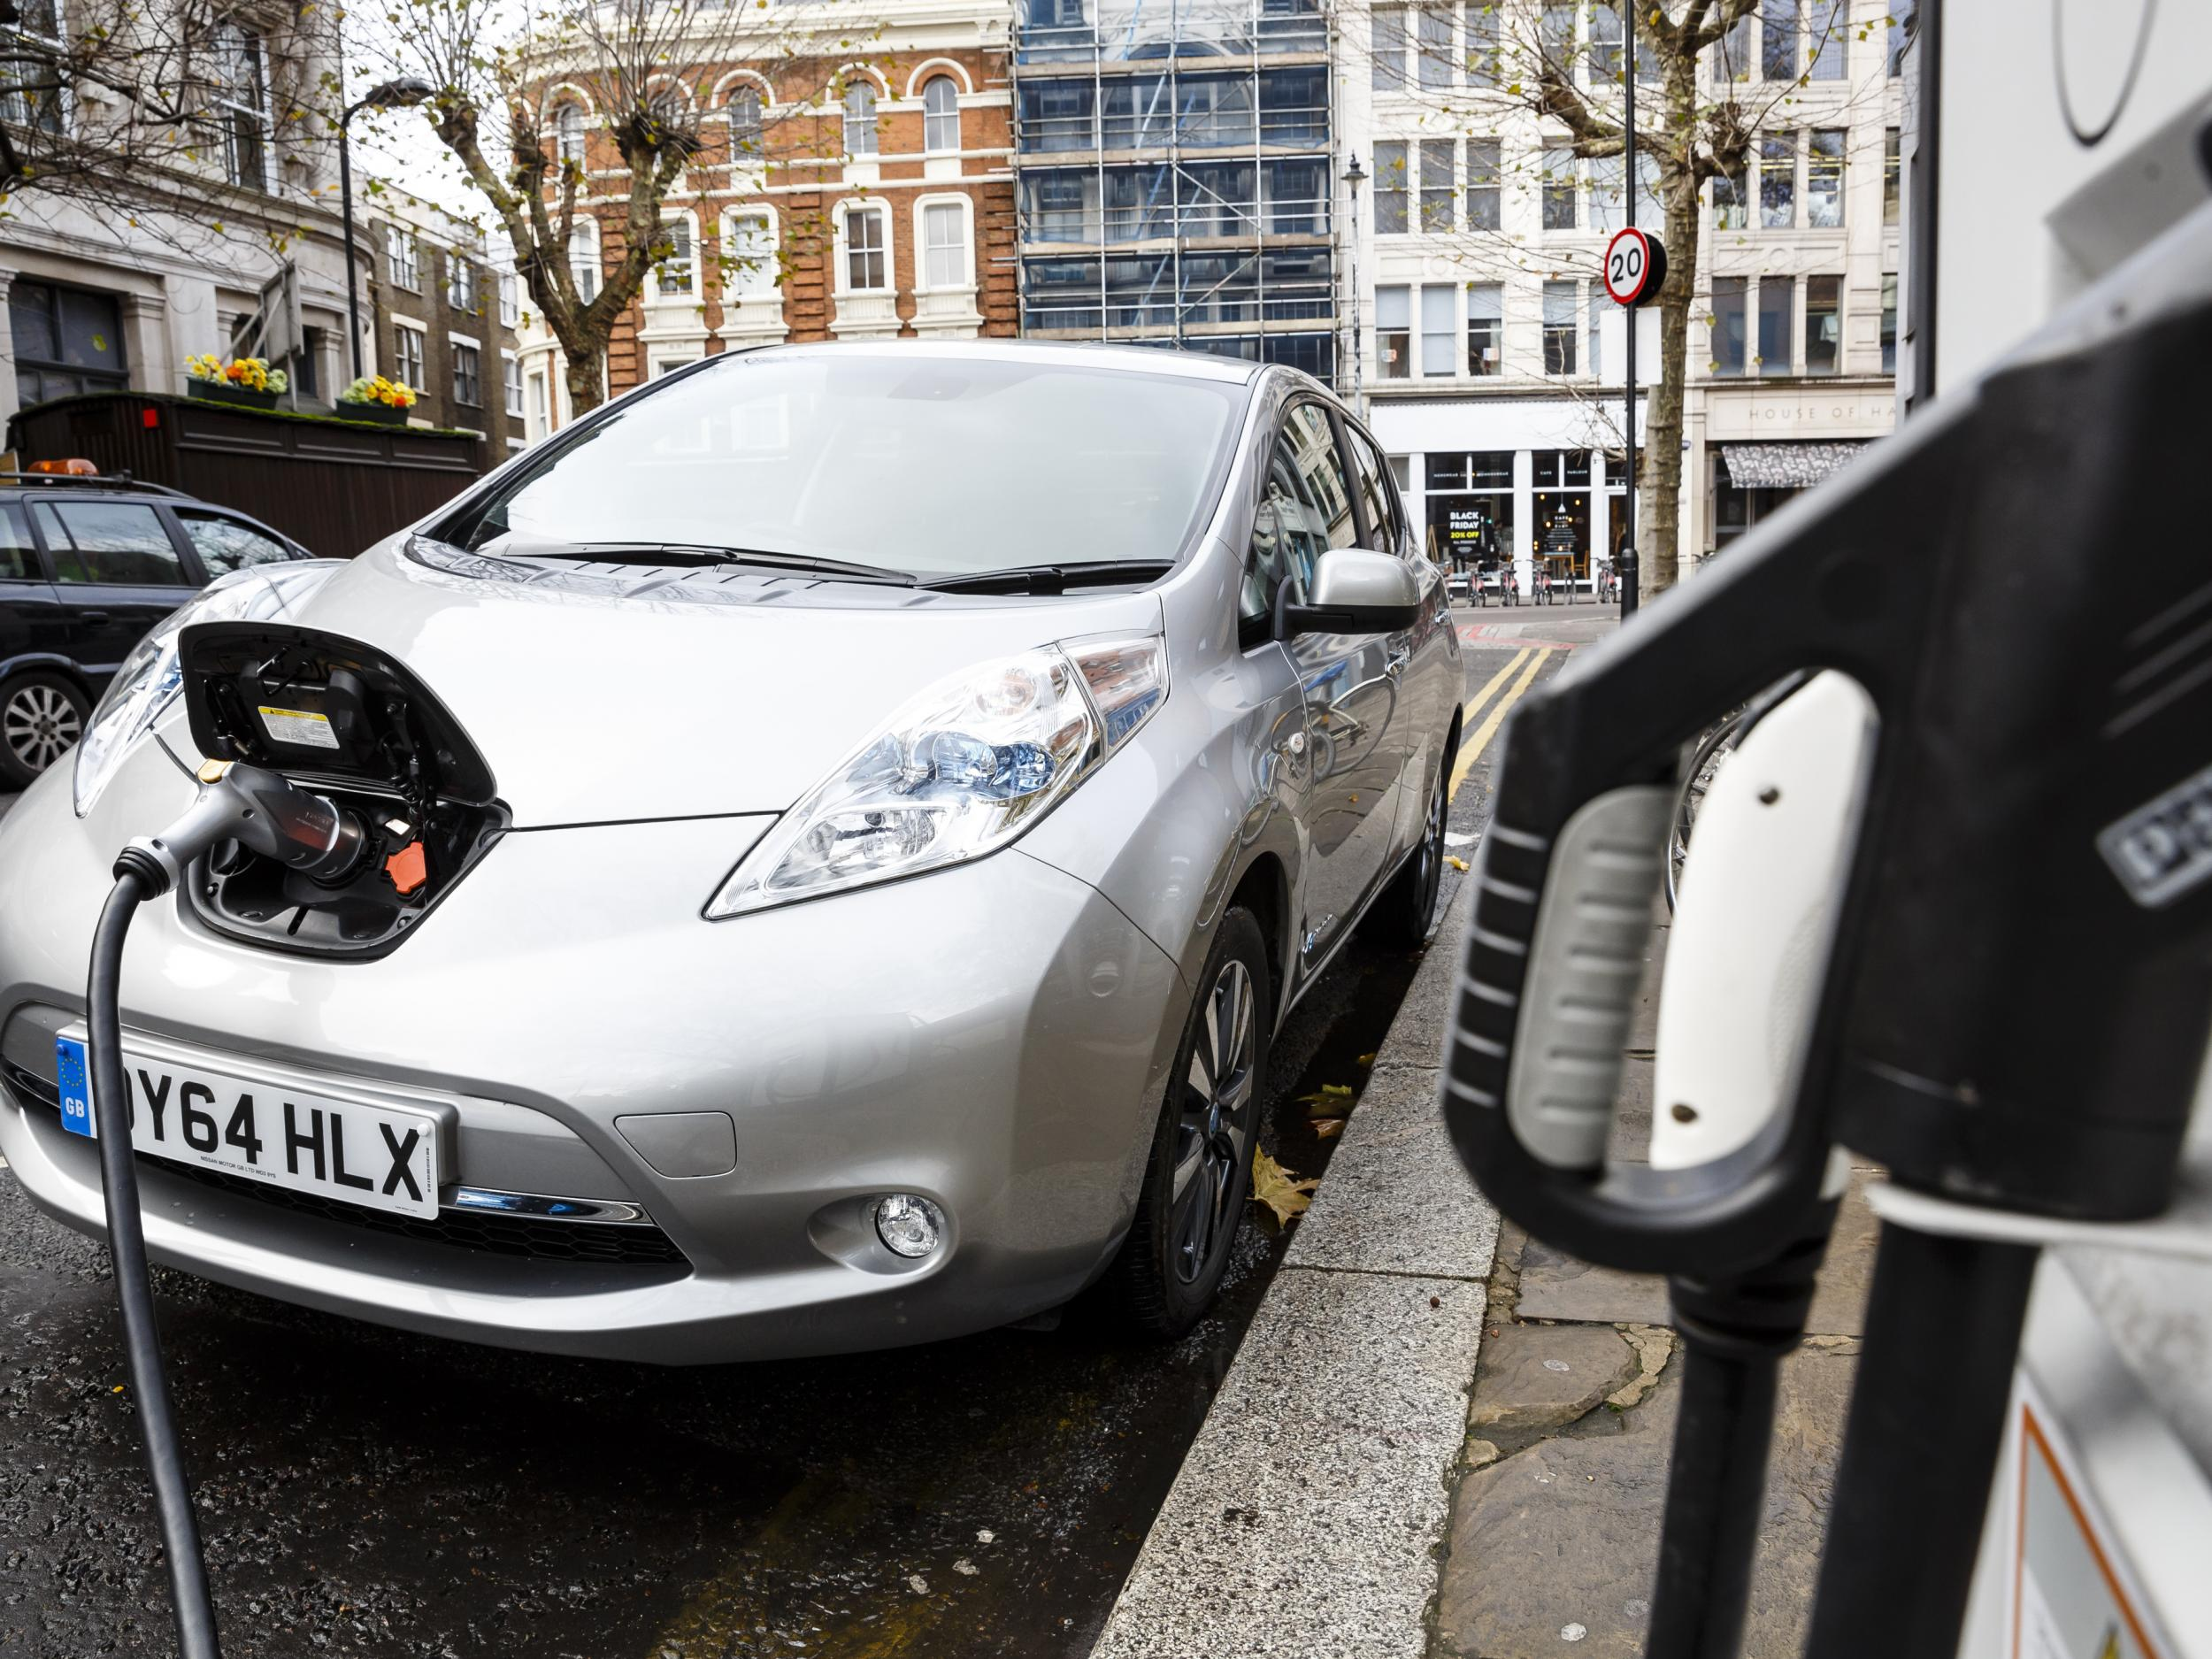 Banning hybrid cars is a good start, but we must do more if